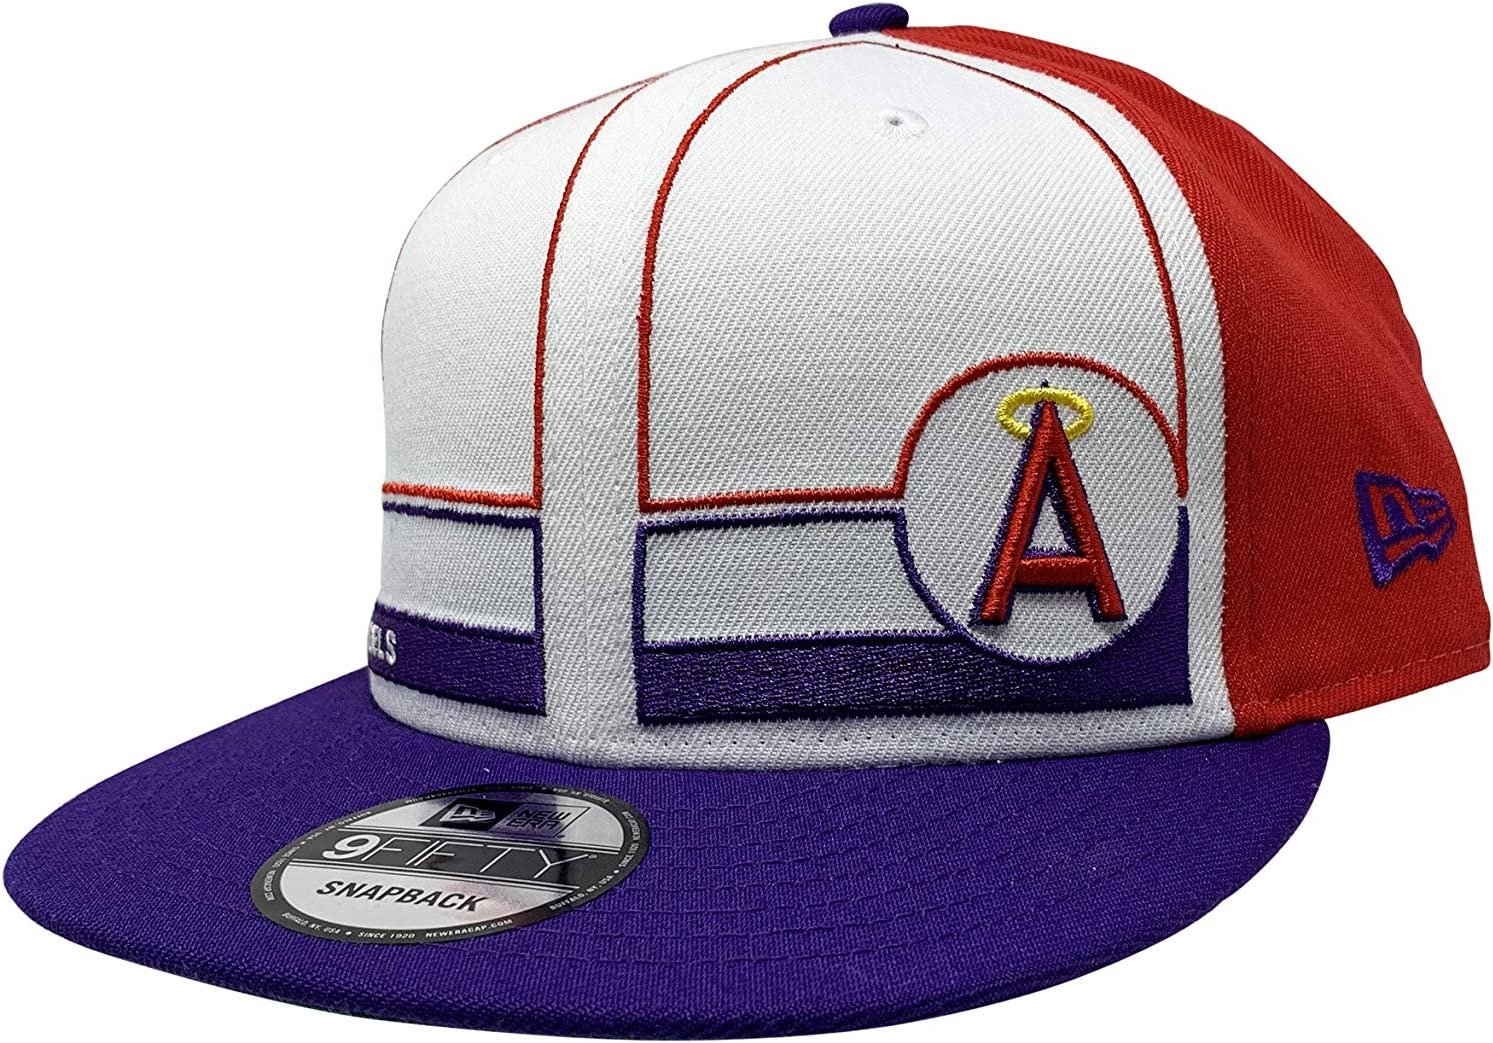 LOS ANGELES ANGELS OF ANAHEIM BASEBALL Hat Cap Snap Back Mesh 1961 Promotional